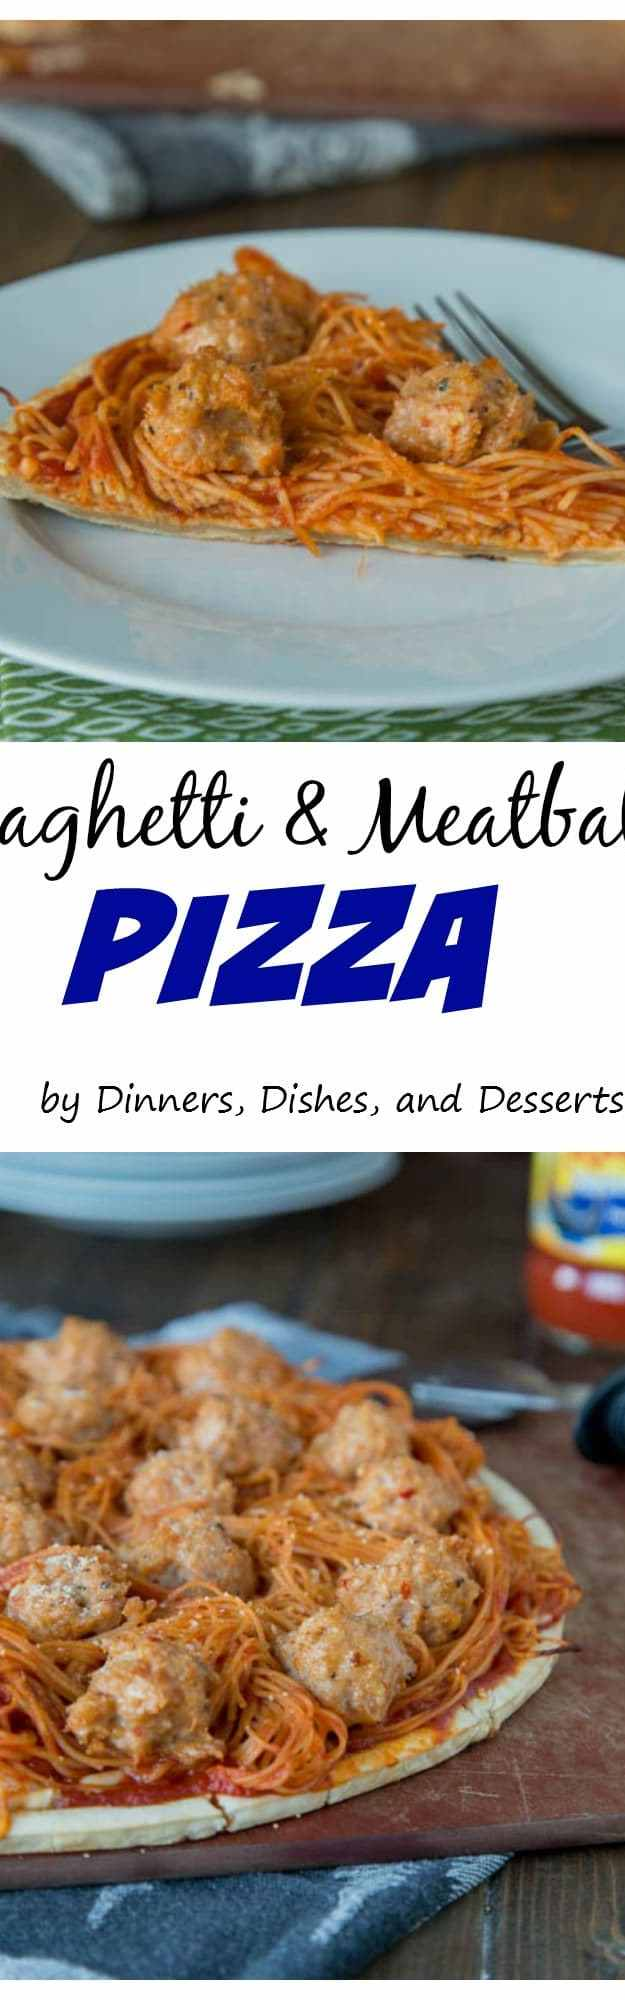 Spaghetti and Meatball Pizza - turn pizza night into something new by topping it with spaghetti and meatballs!